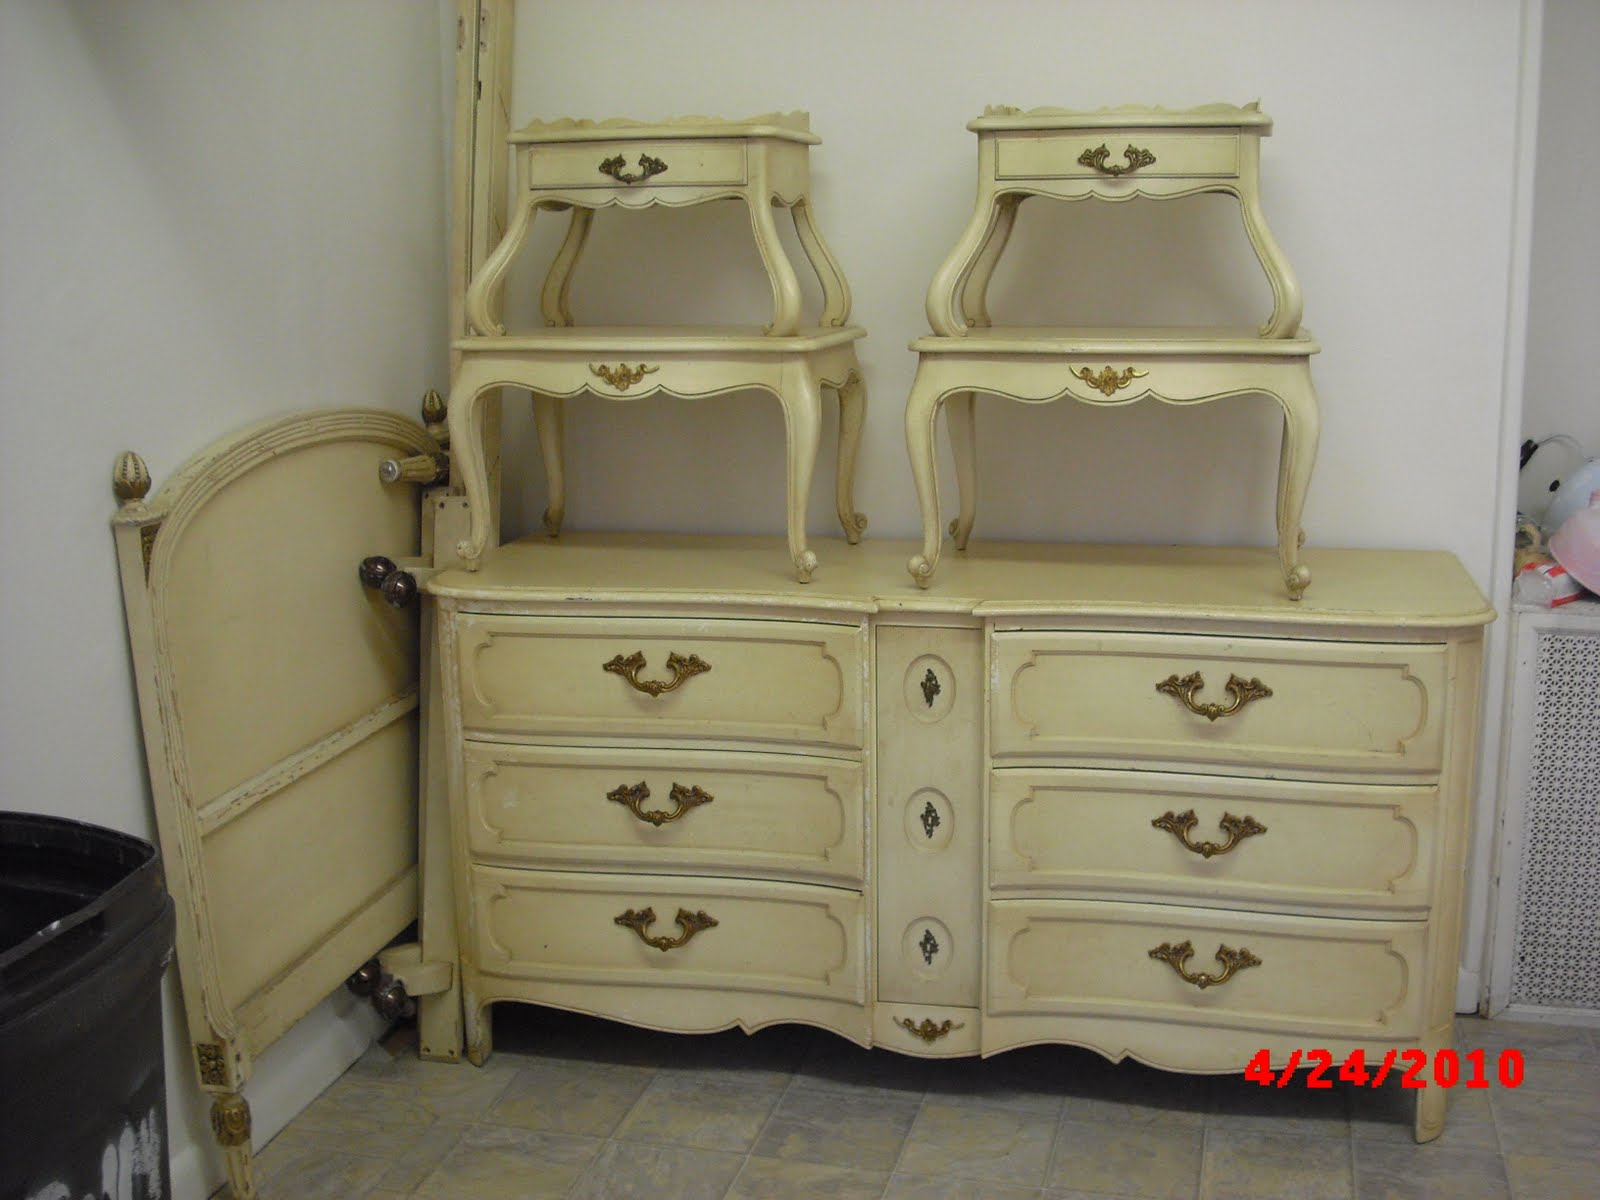 Old bedroom furniture popular interior house ideas for Vintage bedroom furniture